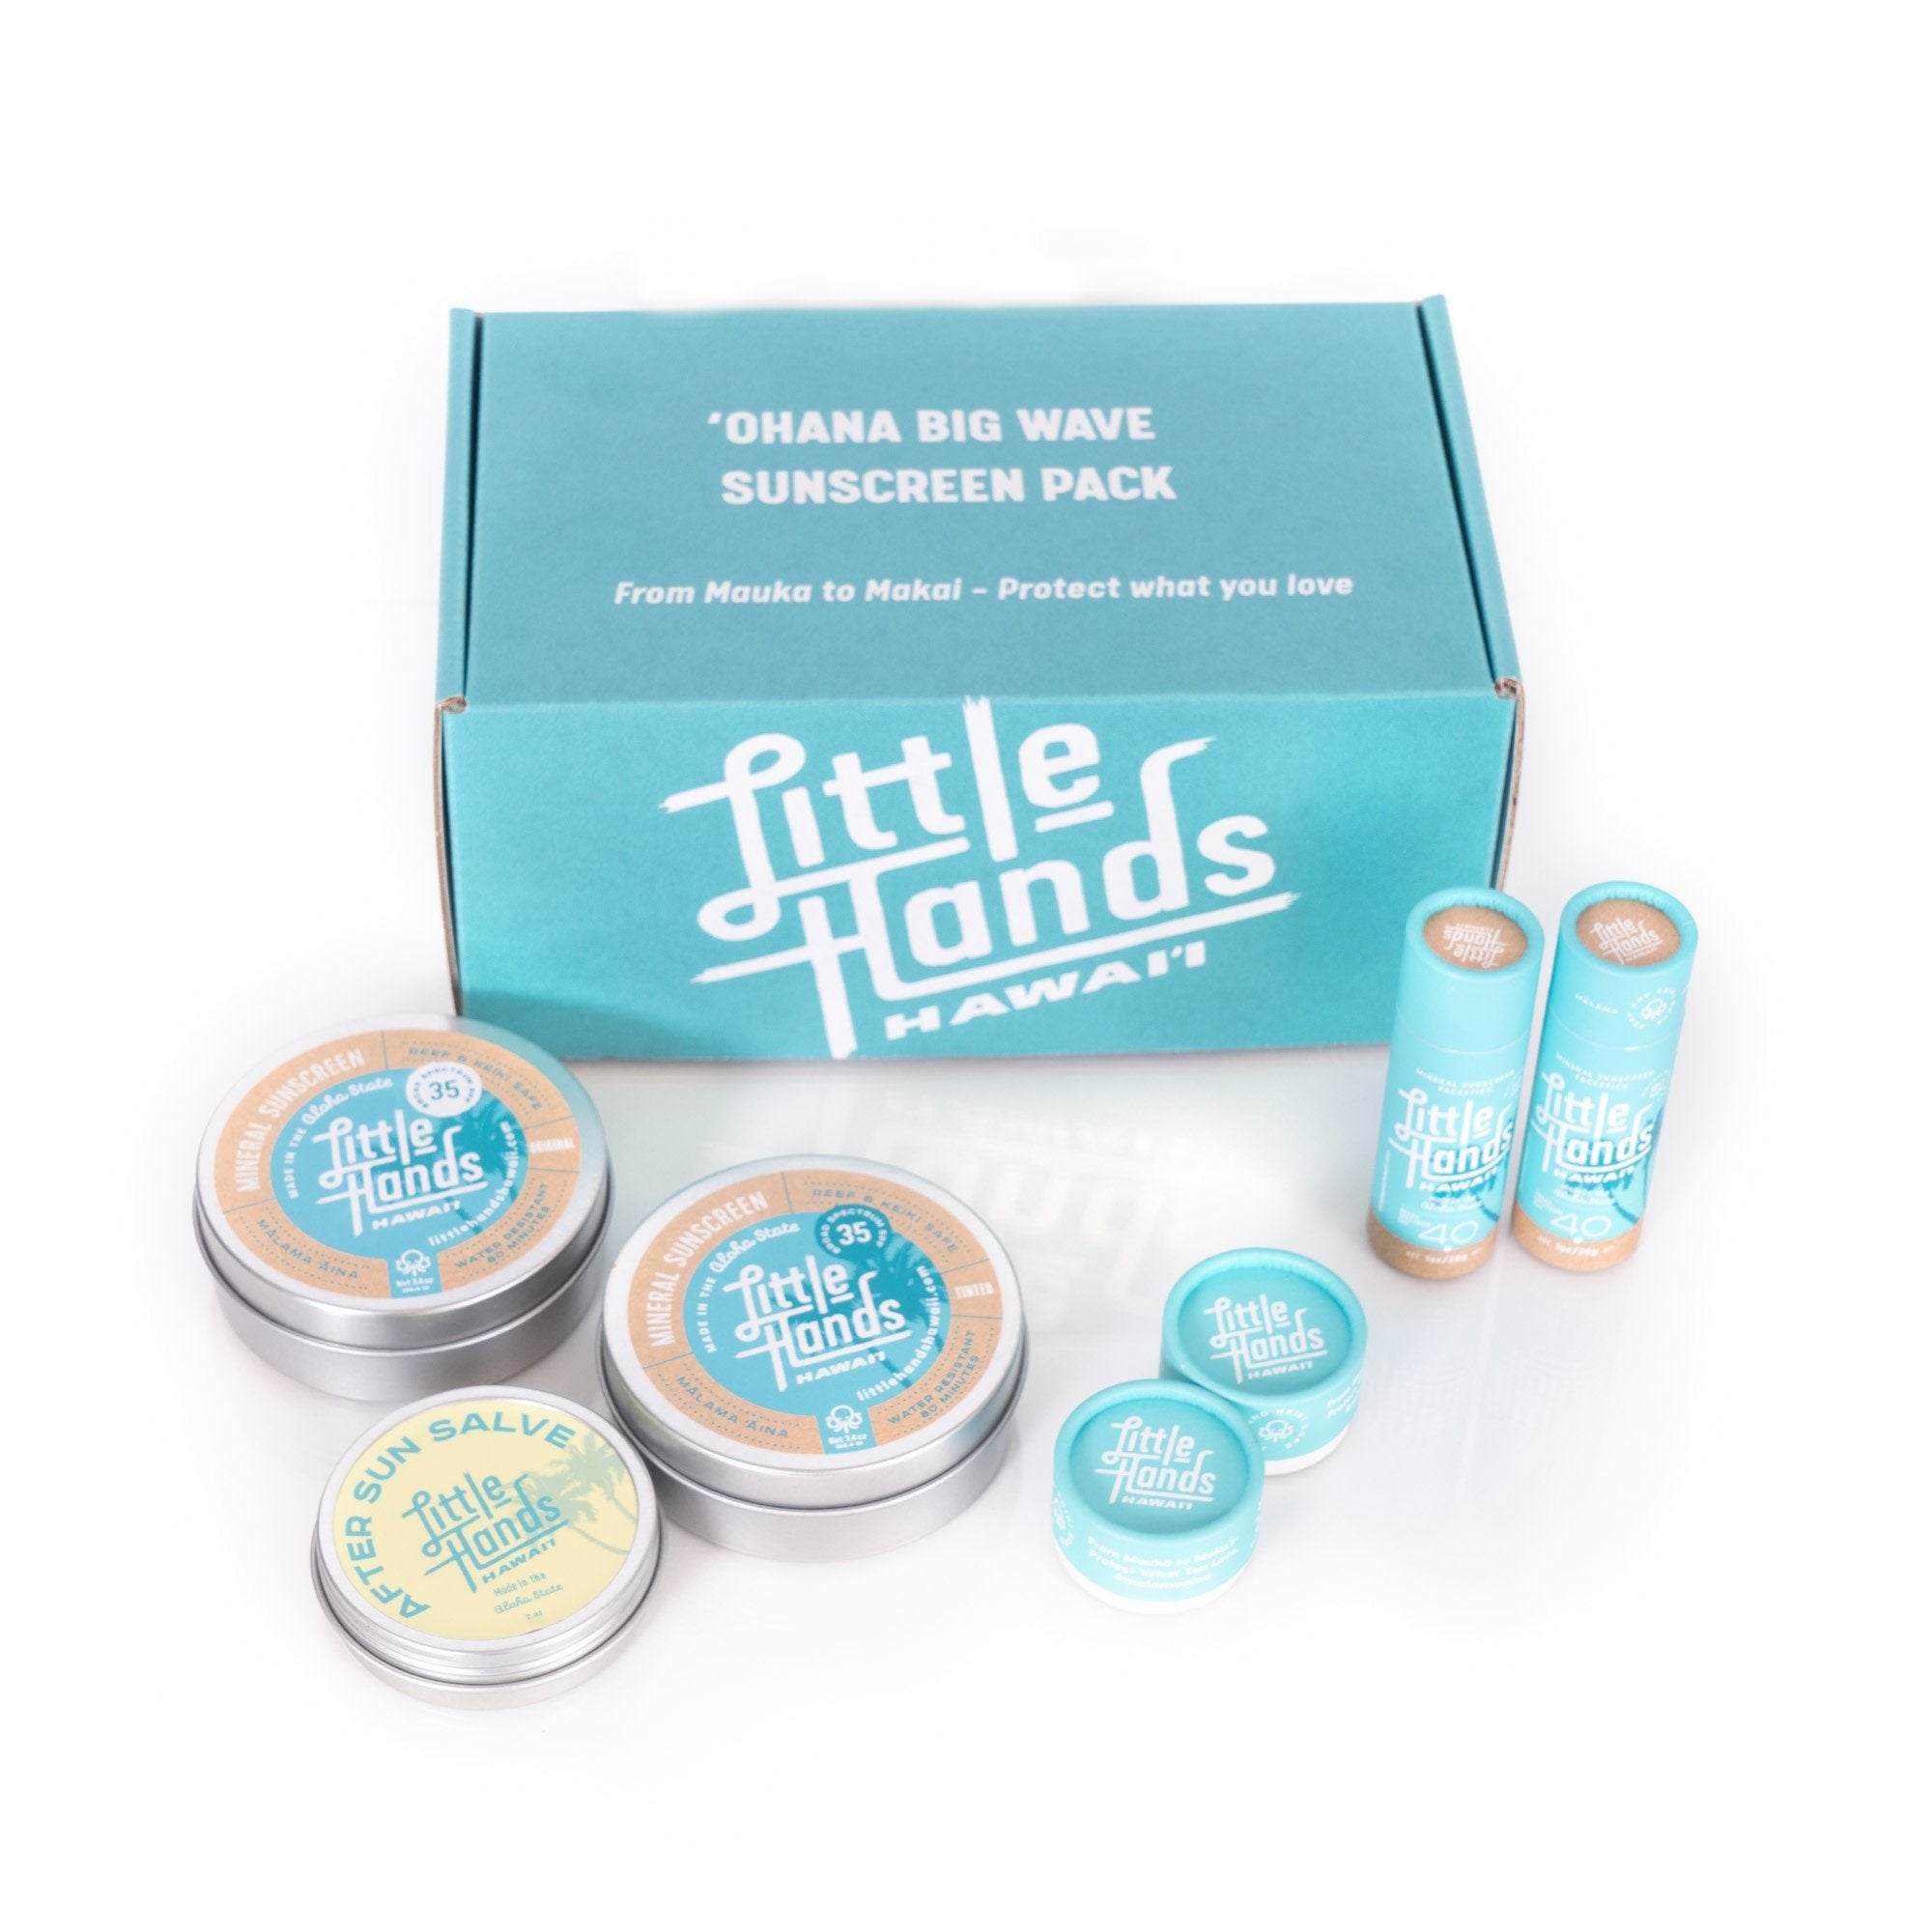 Little Hands - ʻOhana Big Wave Bundle Pack